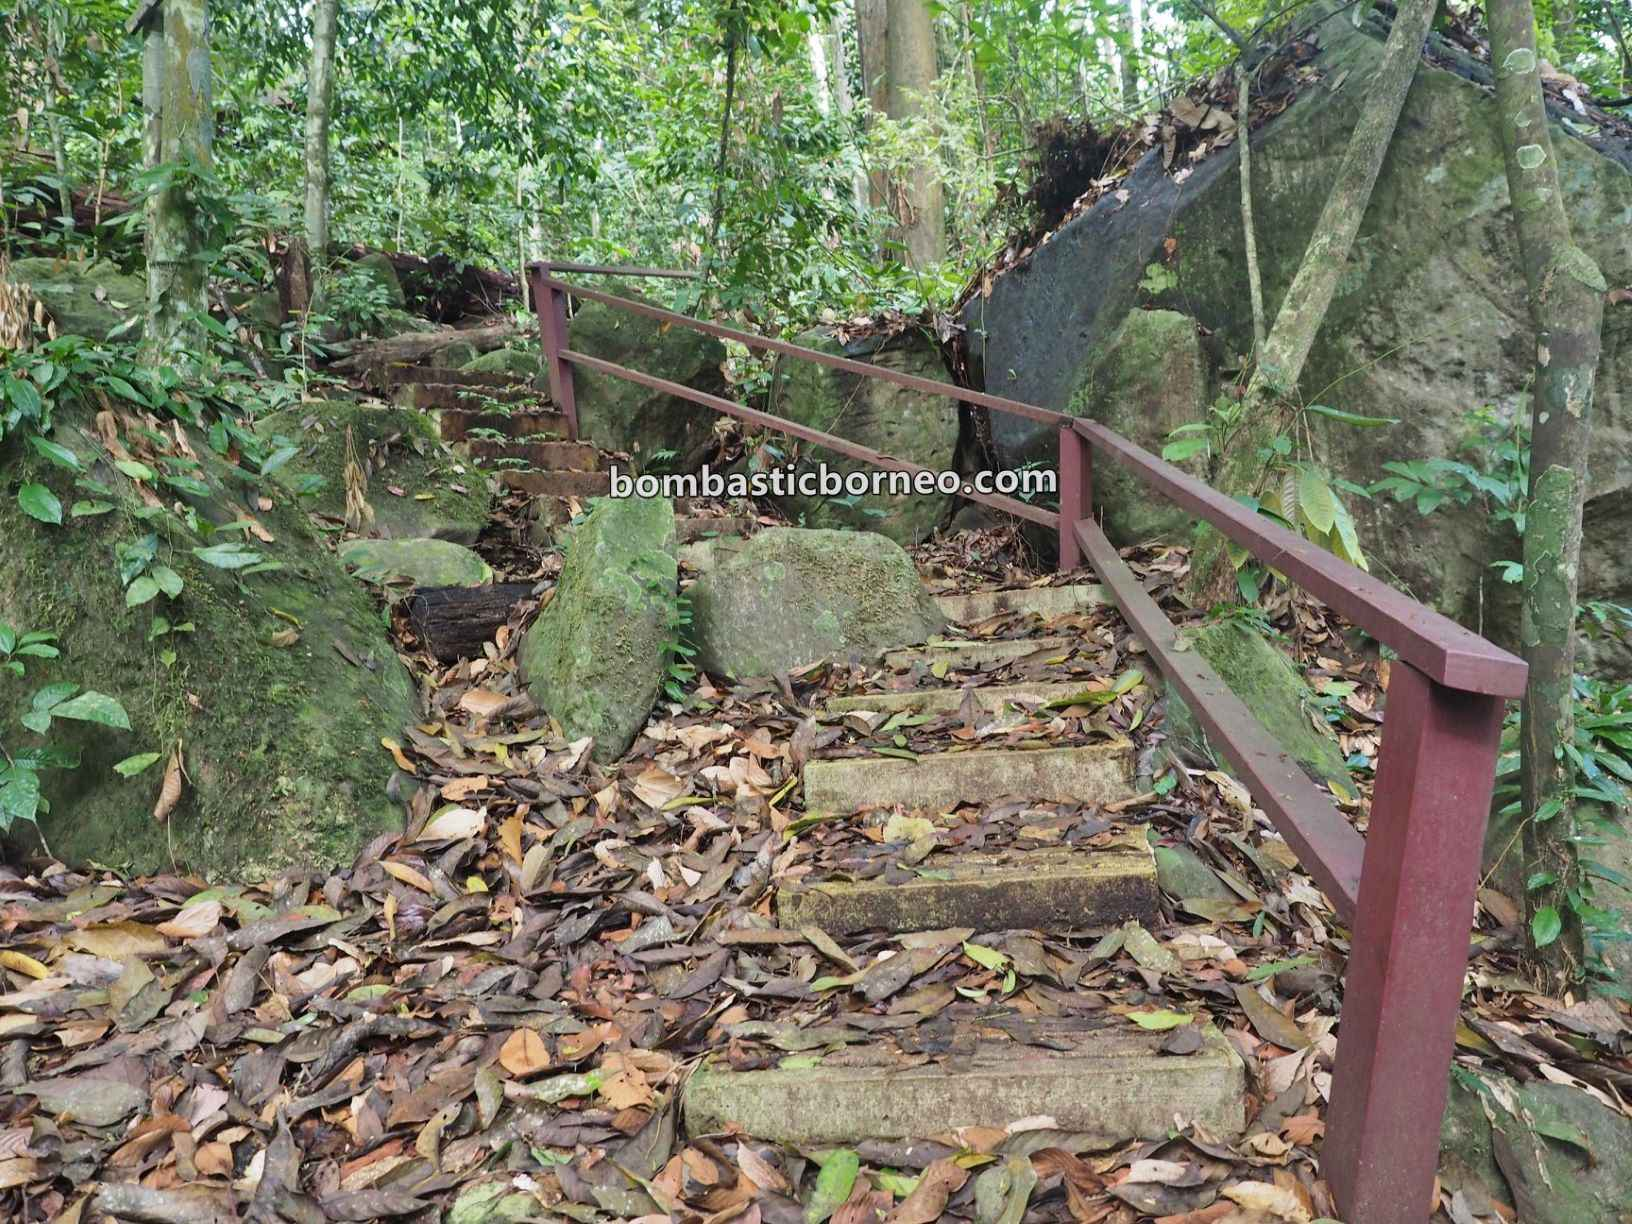 Pusat Sejadi Bukit Gemok, Gemok Hill Forest Reserve, hiking, exploration, canopy bridge, destination, Hutan simpan, Malaysia, Tourism, rainforest, travel guide, Borneo, 探索婆罗洲游踪, 斗湖旅游景点, 沙巴森林保护区